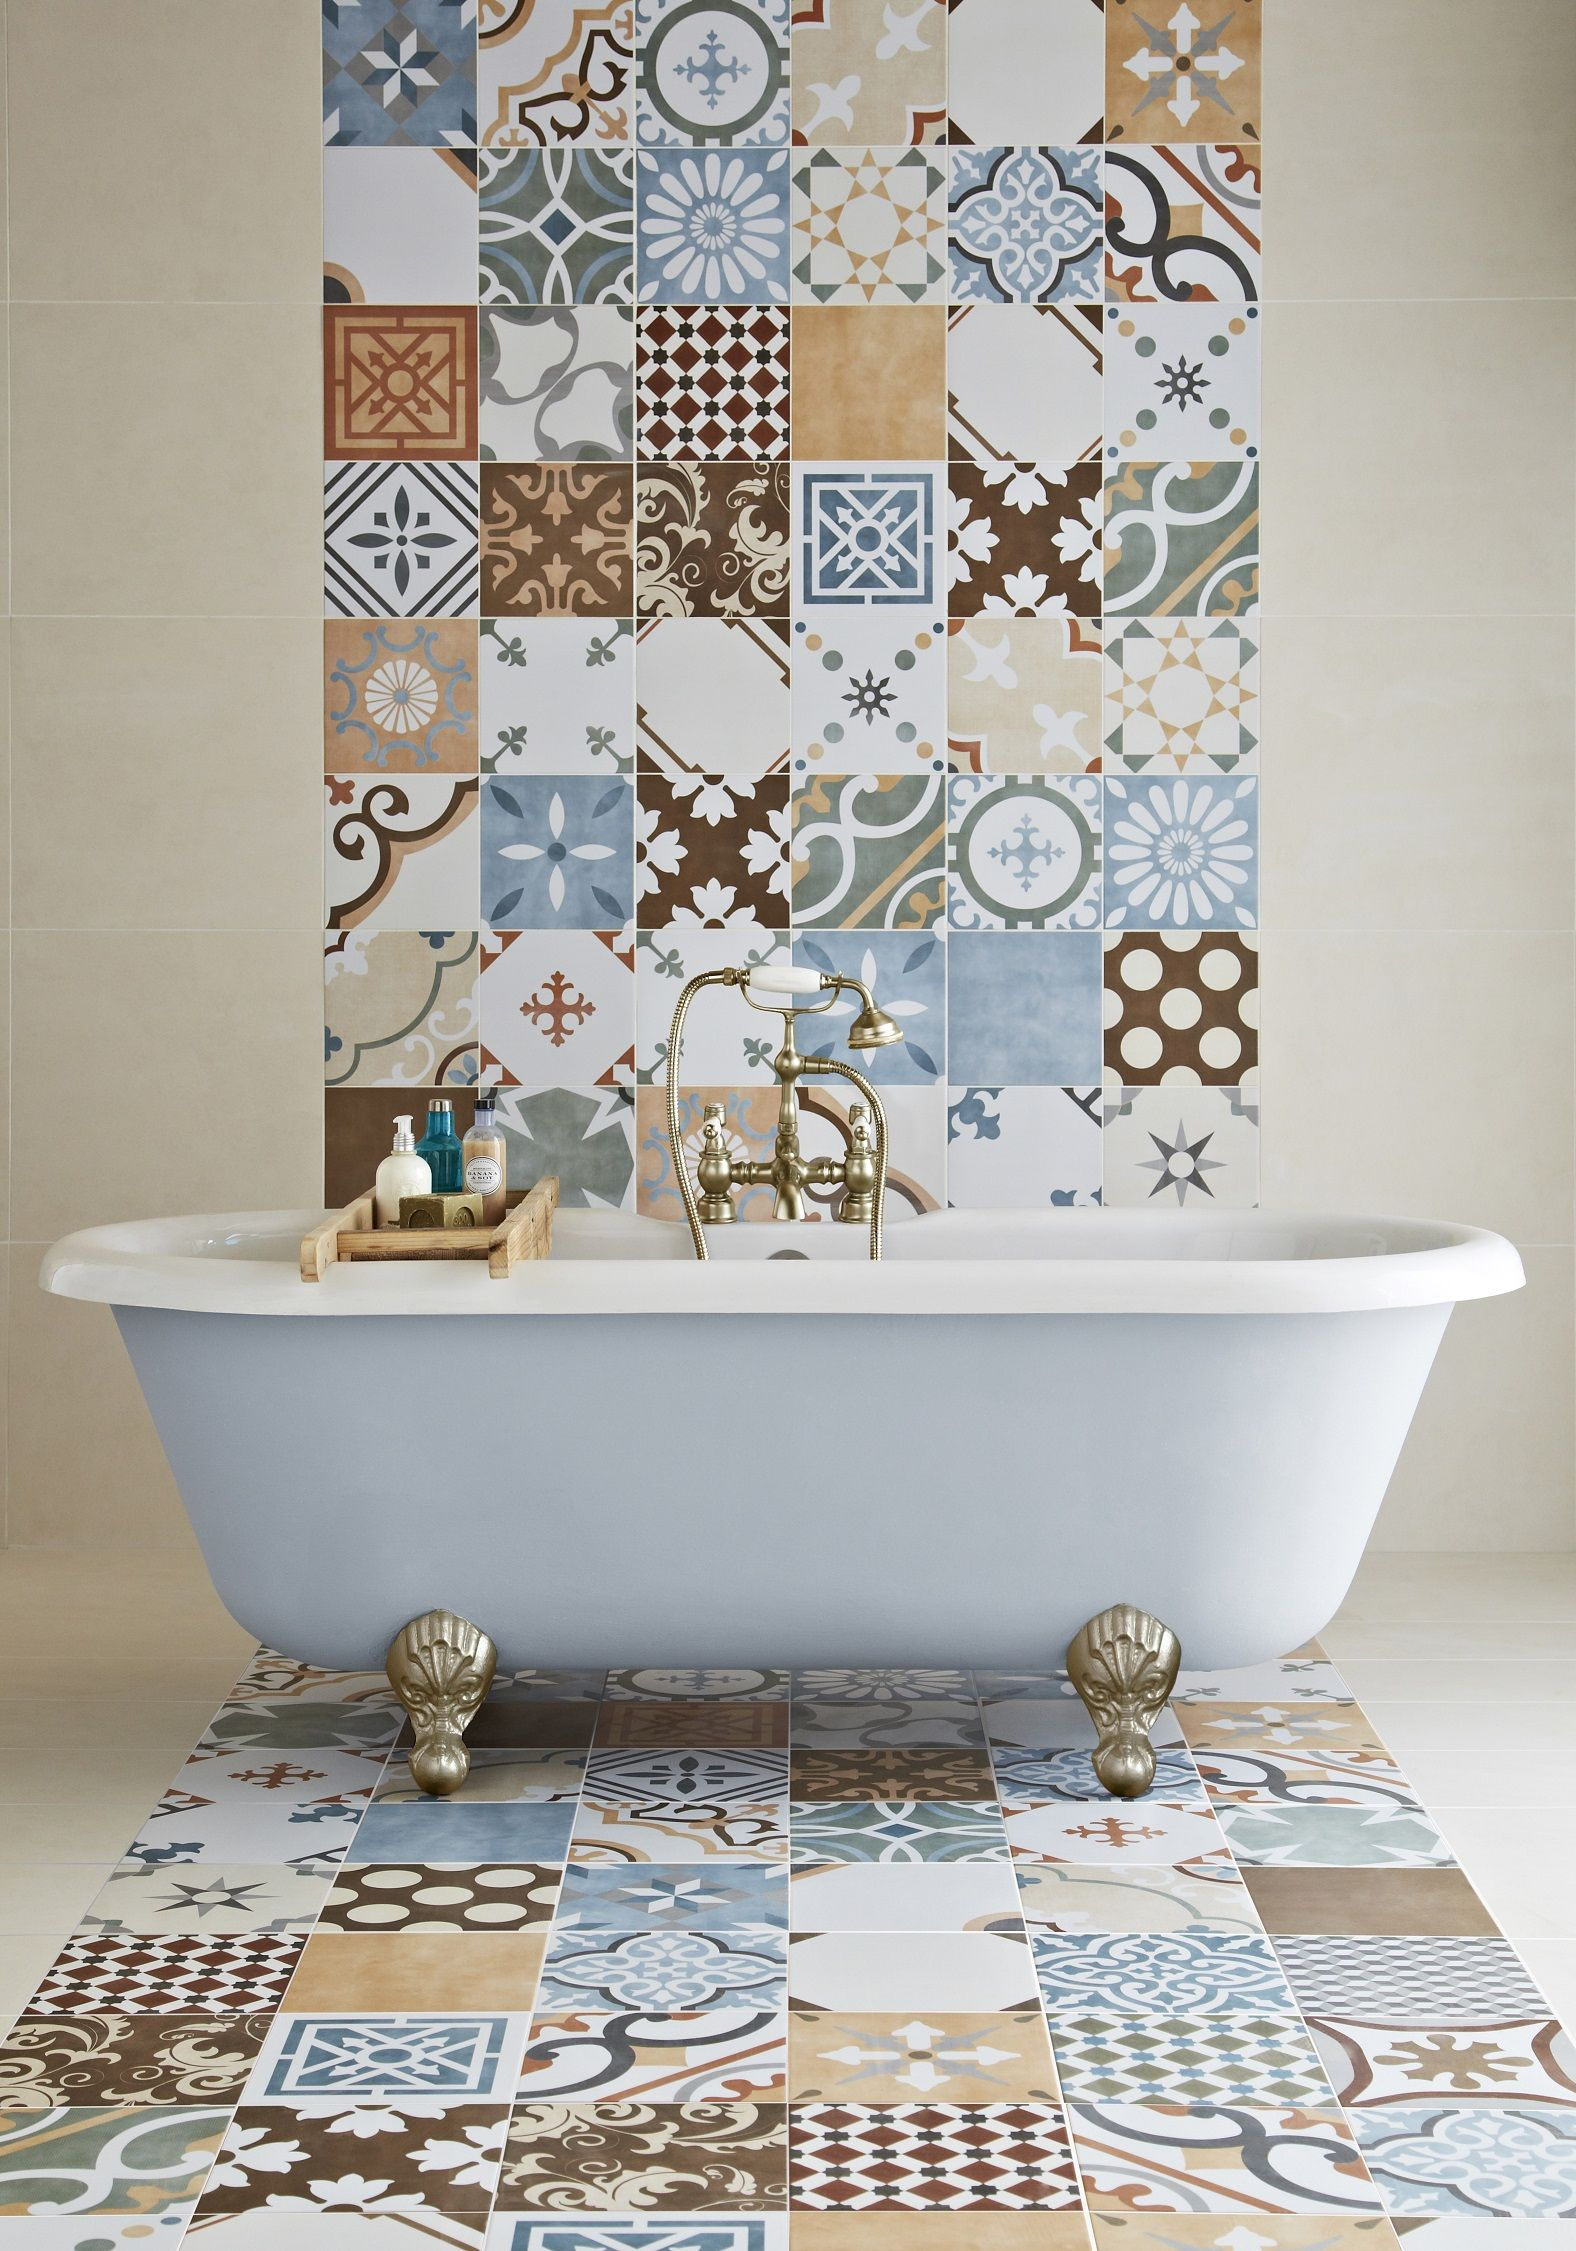 Stamford Tile From Topps Tiles Would Look Amazing On The Floor Of Our Bathroom As It 39 S